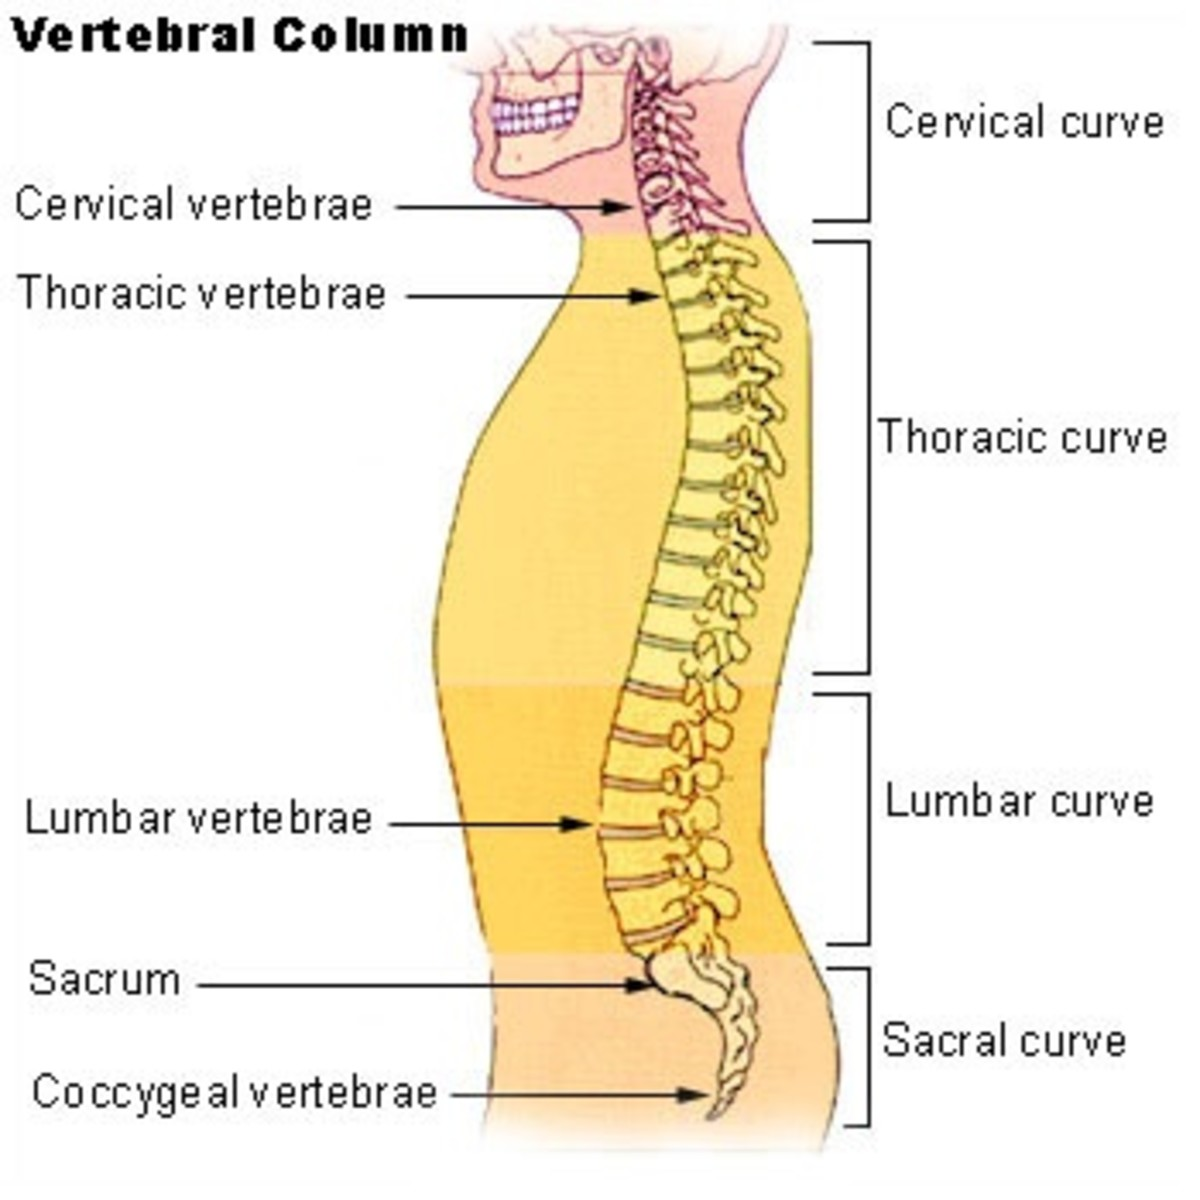 There are seven cervical vertebrae in the neck, twelve thoracic ones in the upper back, five lumbar ones in the lower back, five fused sacral ones, and three to five fused vertebrae in the coccyx.